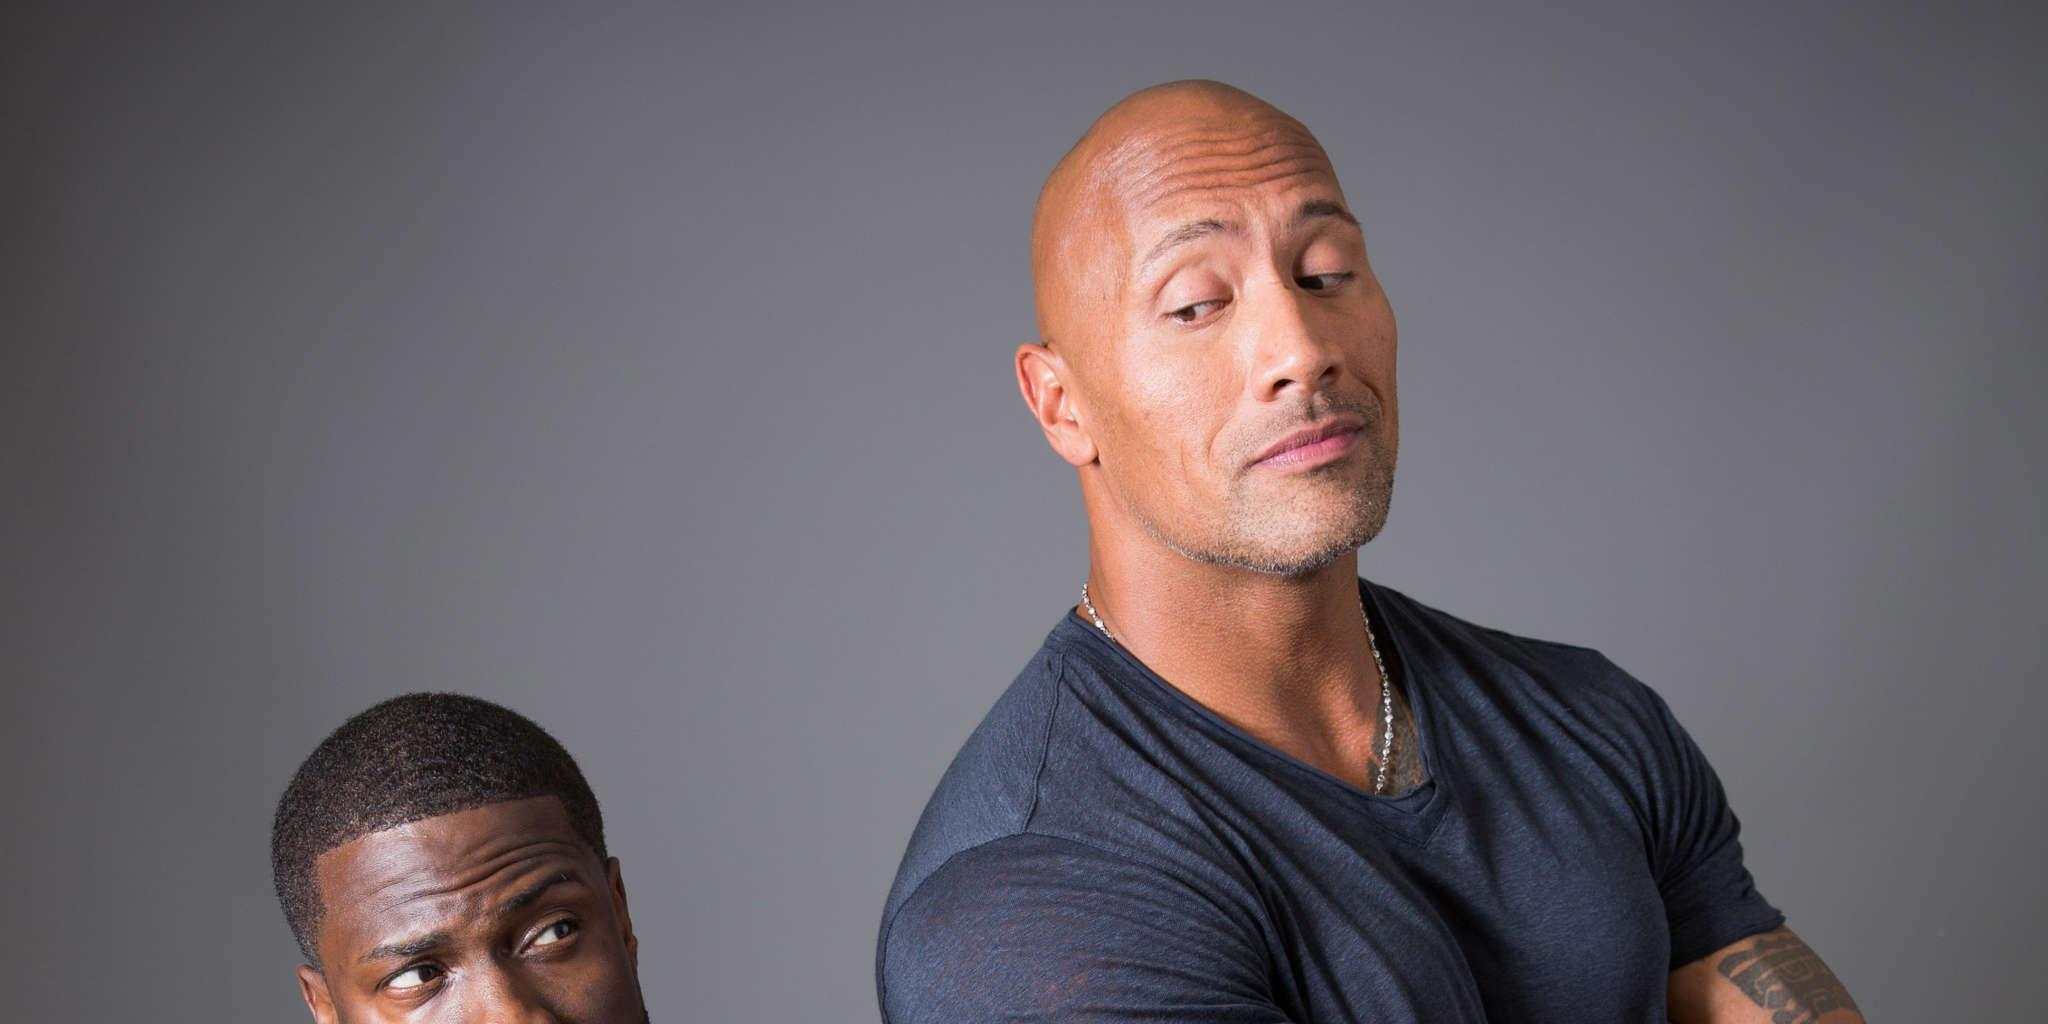 Dwayne Johnson Leaves His Honeymoon To Support Pal Kevin Hart Following His Car Accident